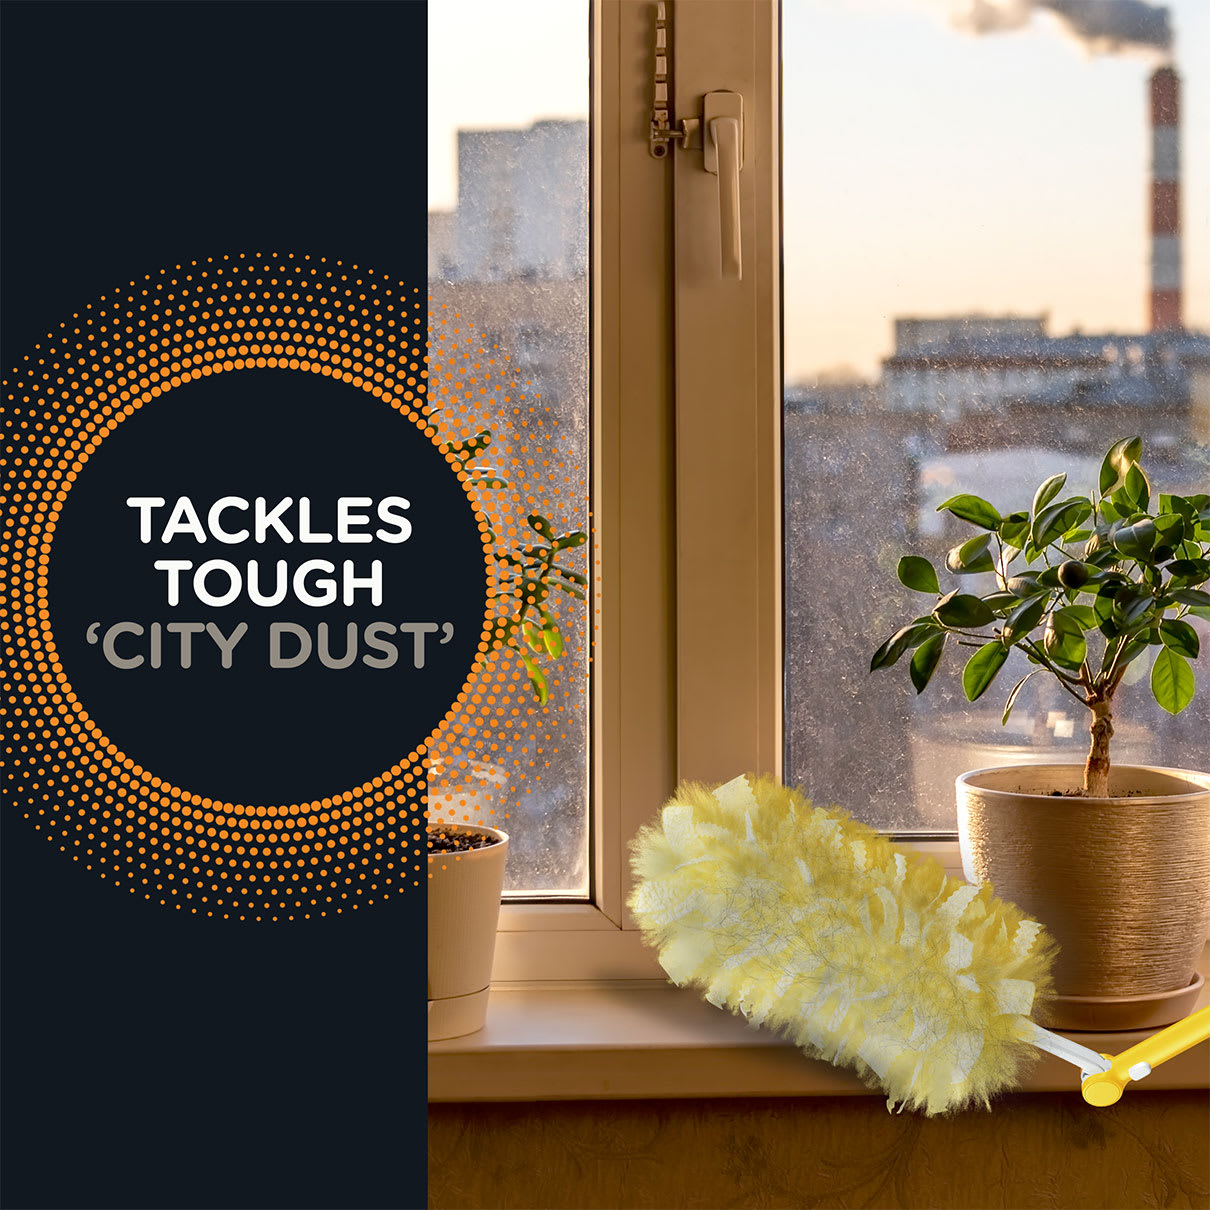 Swiffer Duster Tackles Tough City Dust